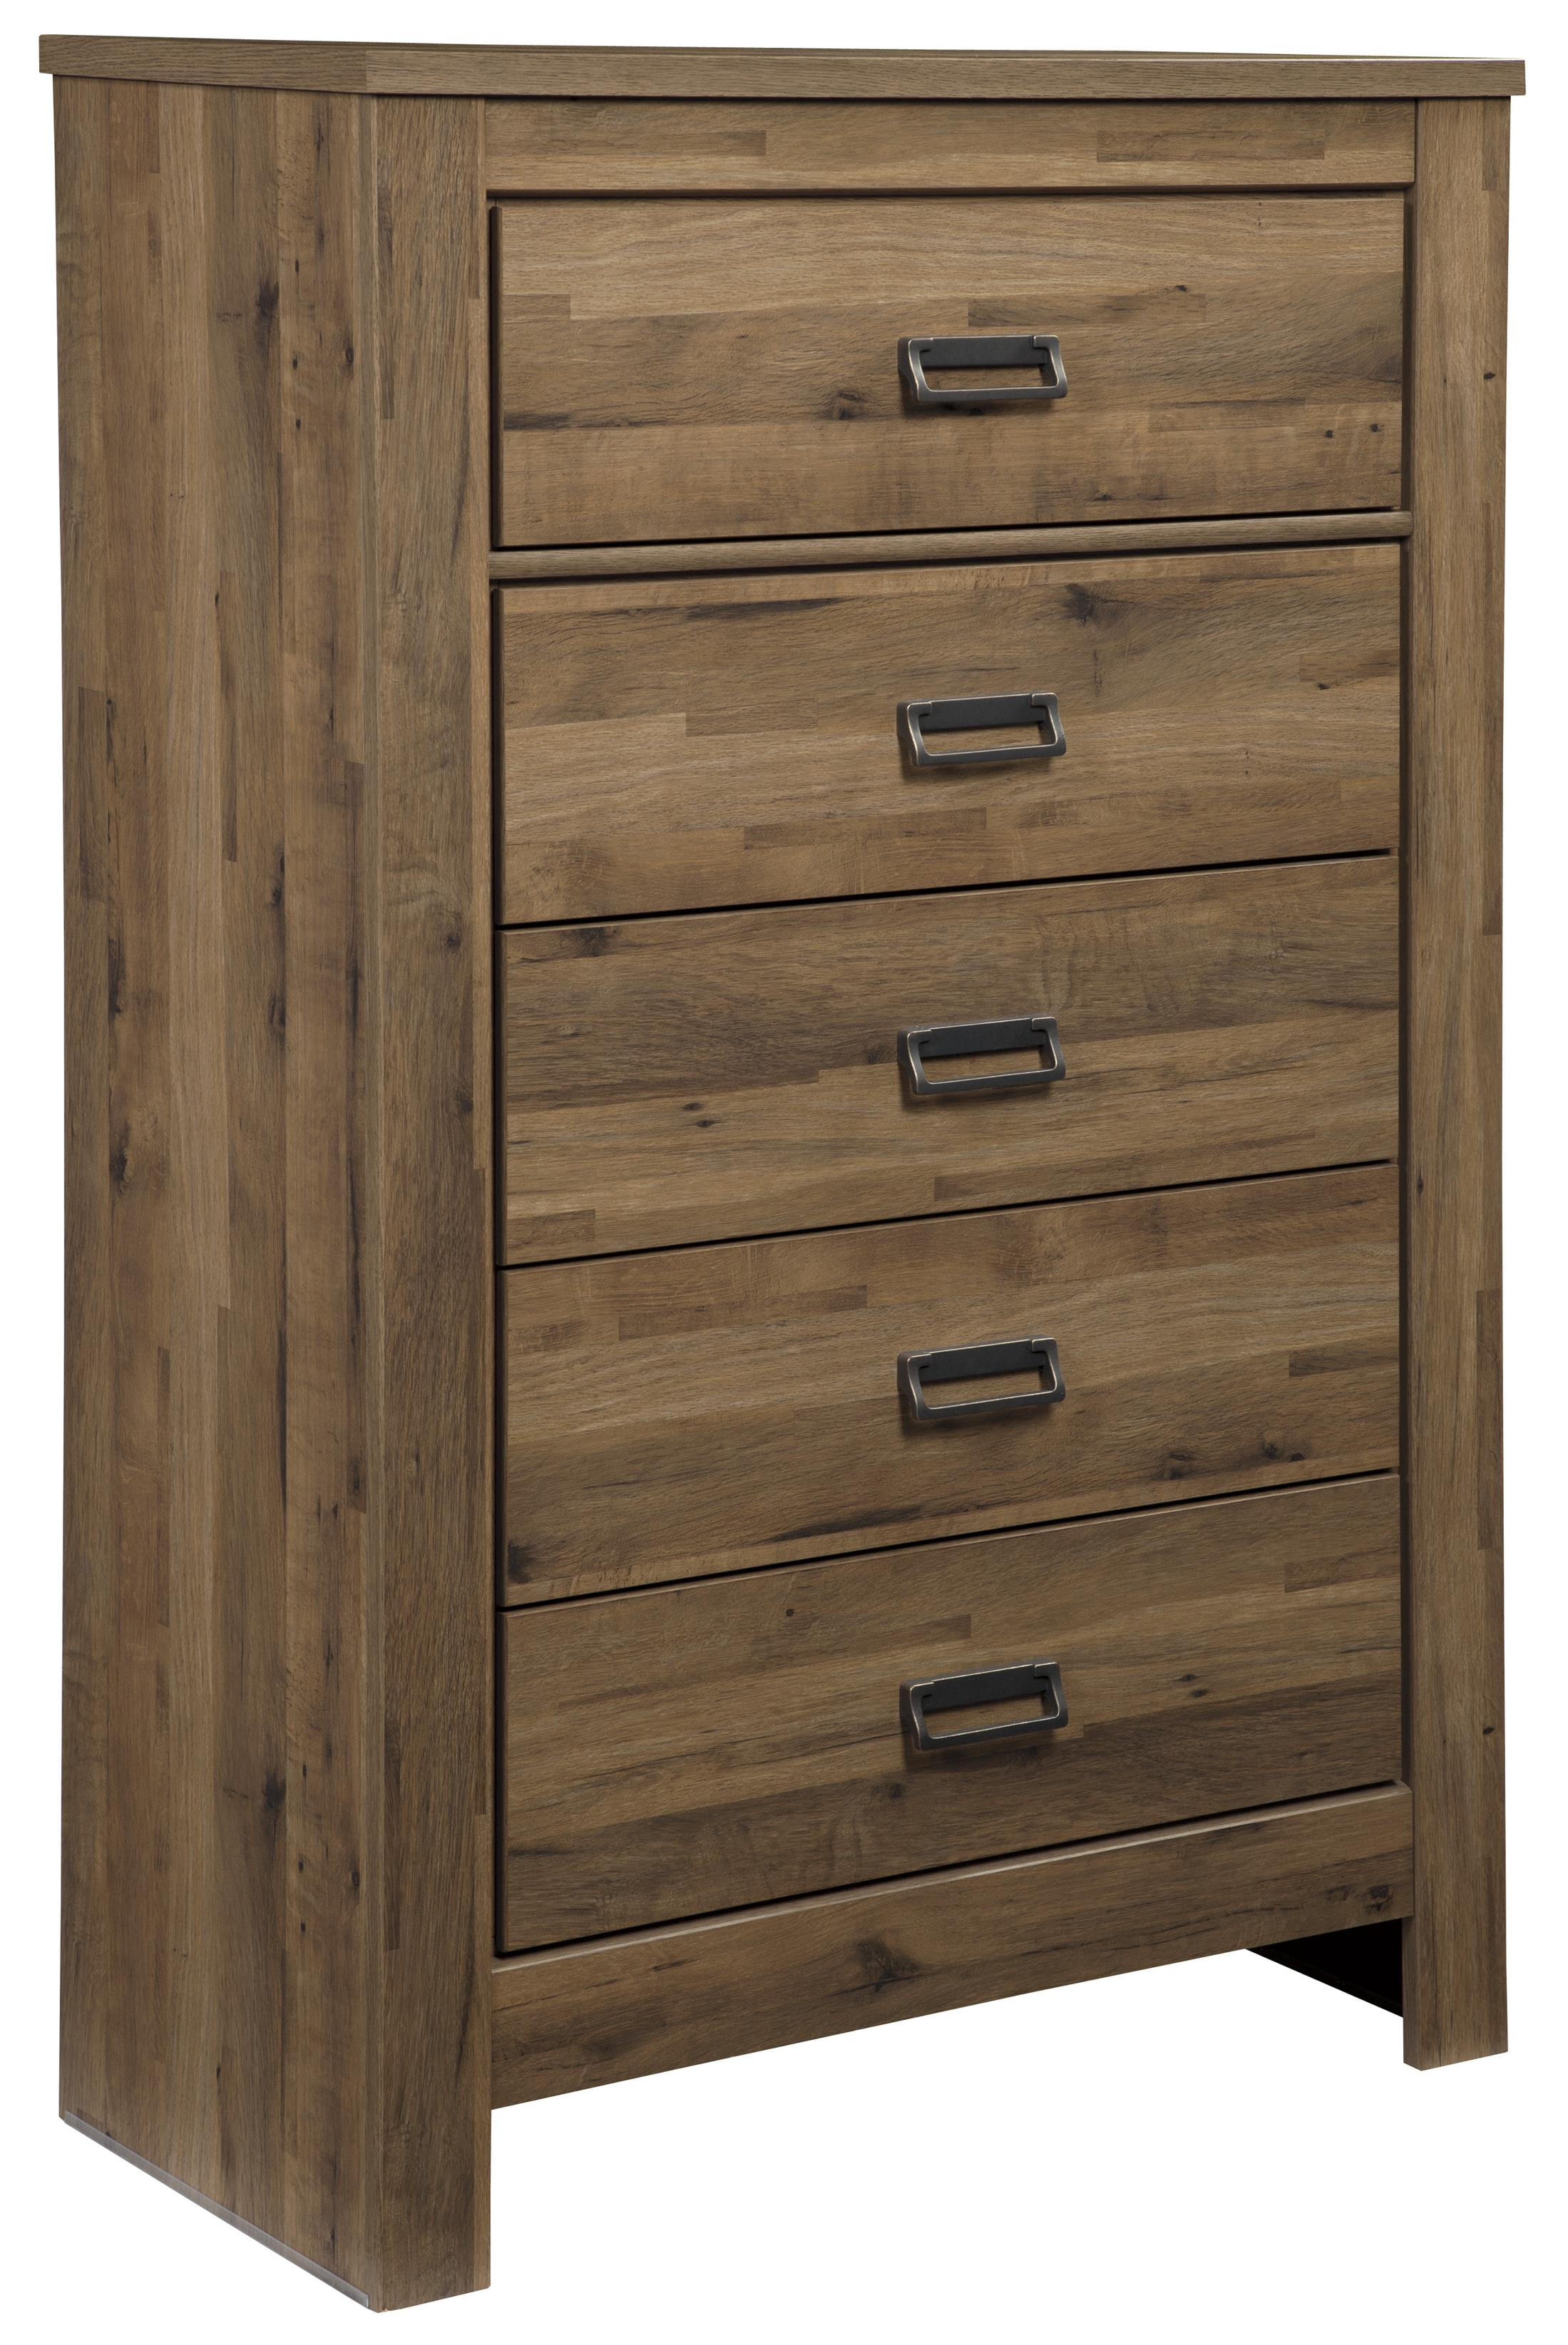 Signature Design by Ashley Simon Five Drawer Chest - Item Number: B369-46